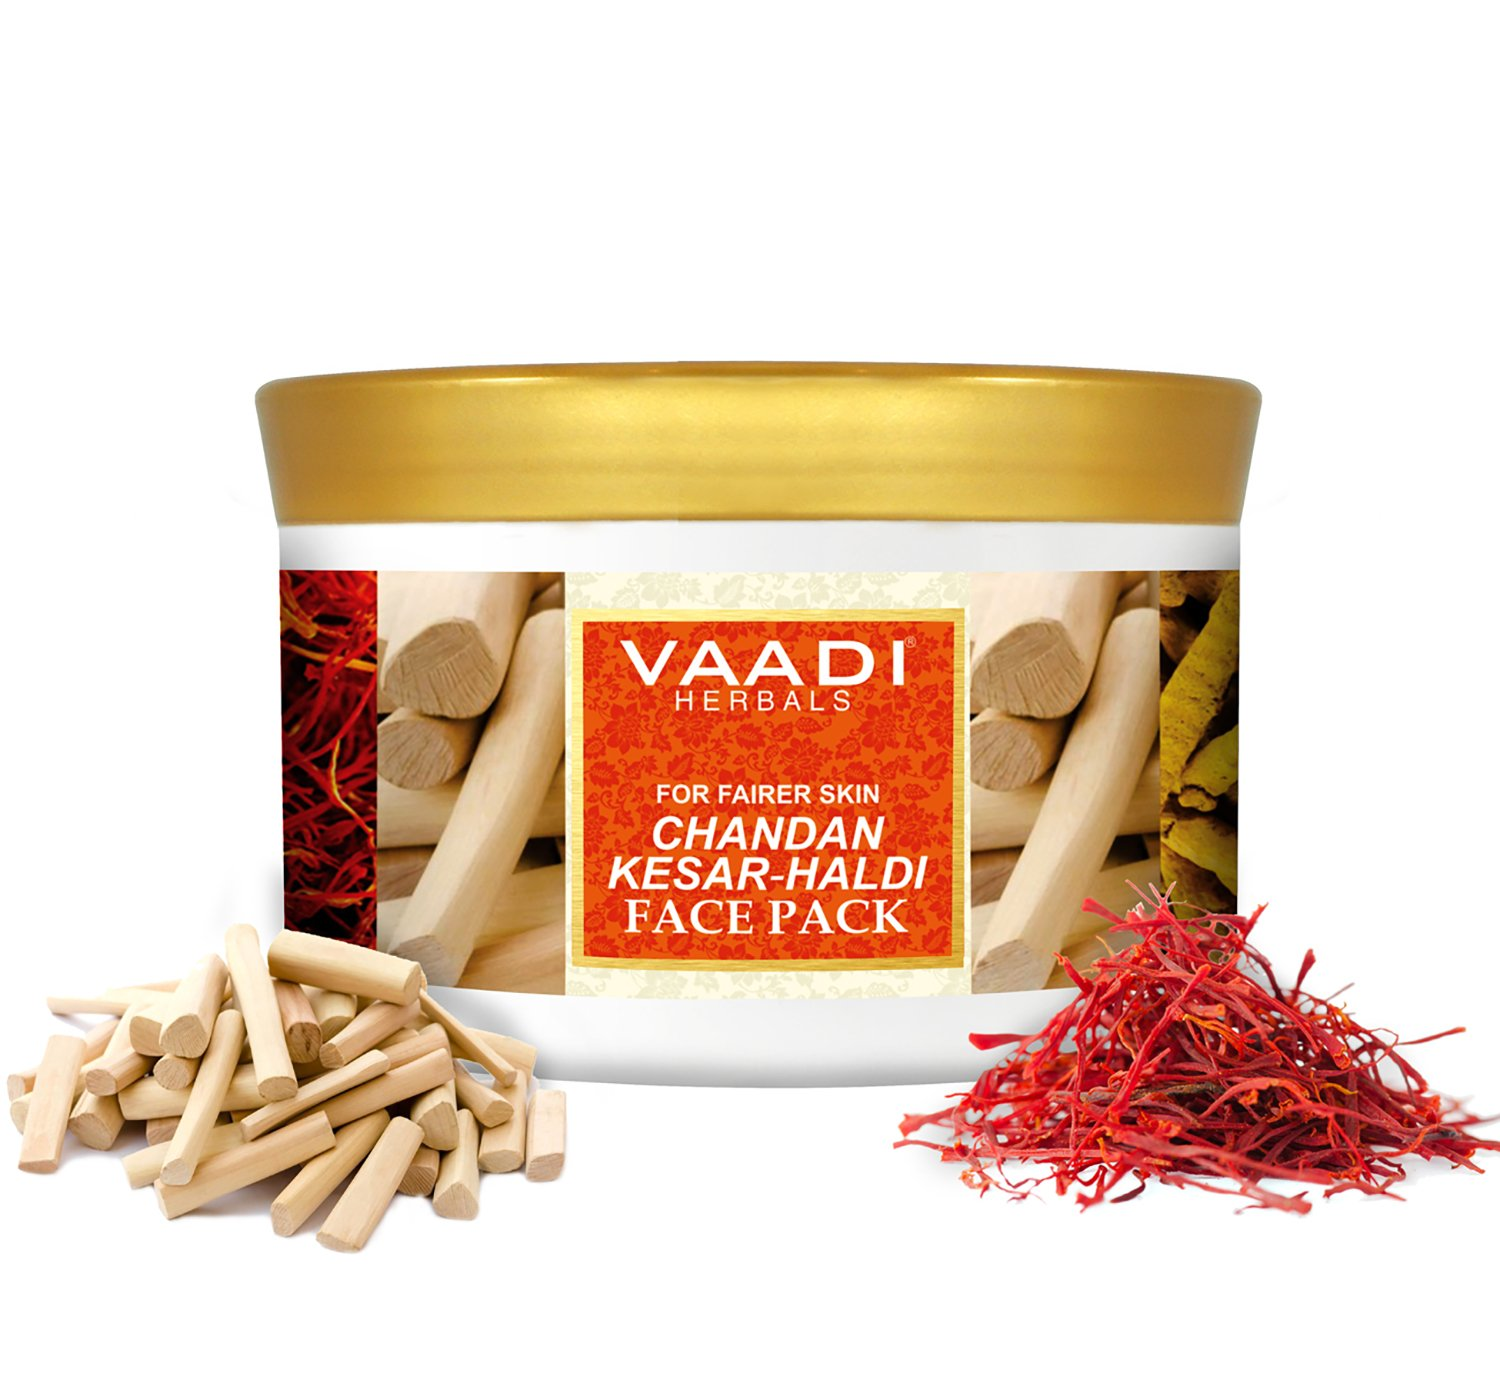 Vaadi Herbals Face Pack, Chandan Kesar and Haldi - Turmeric And Milk Cream For Face